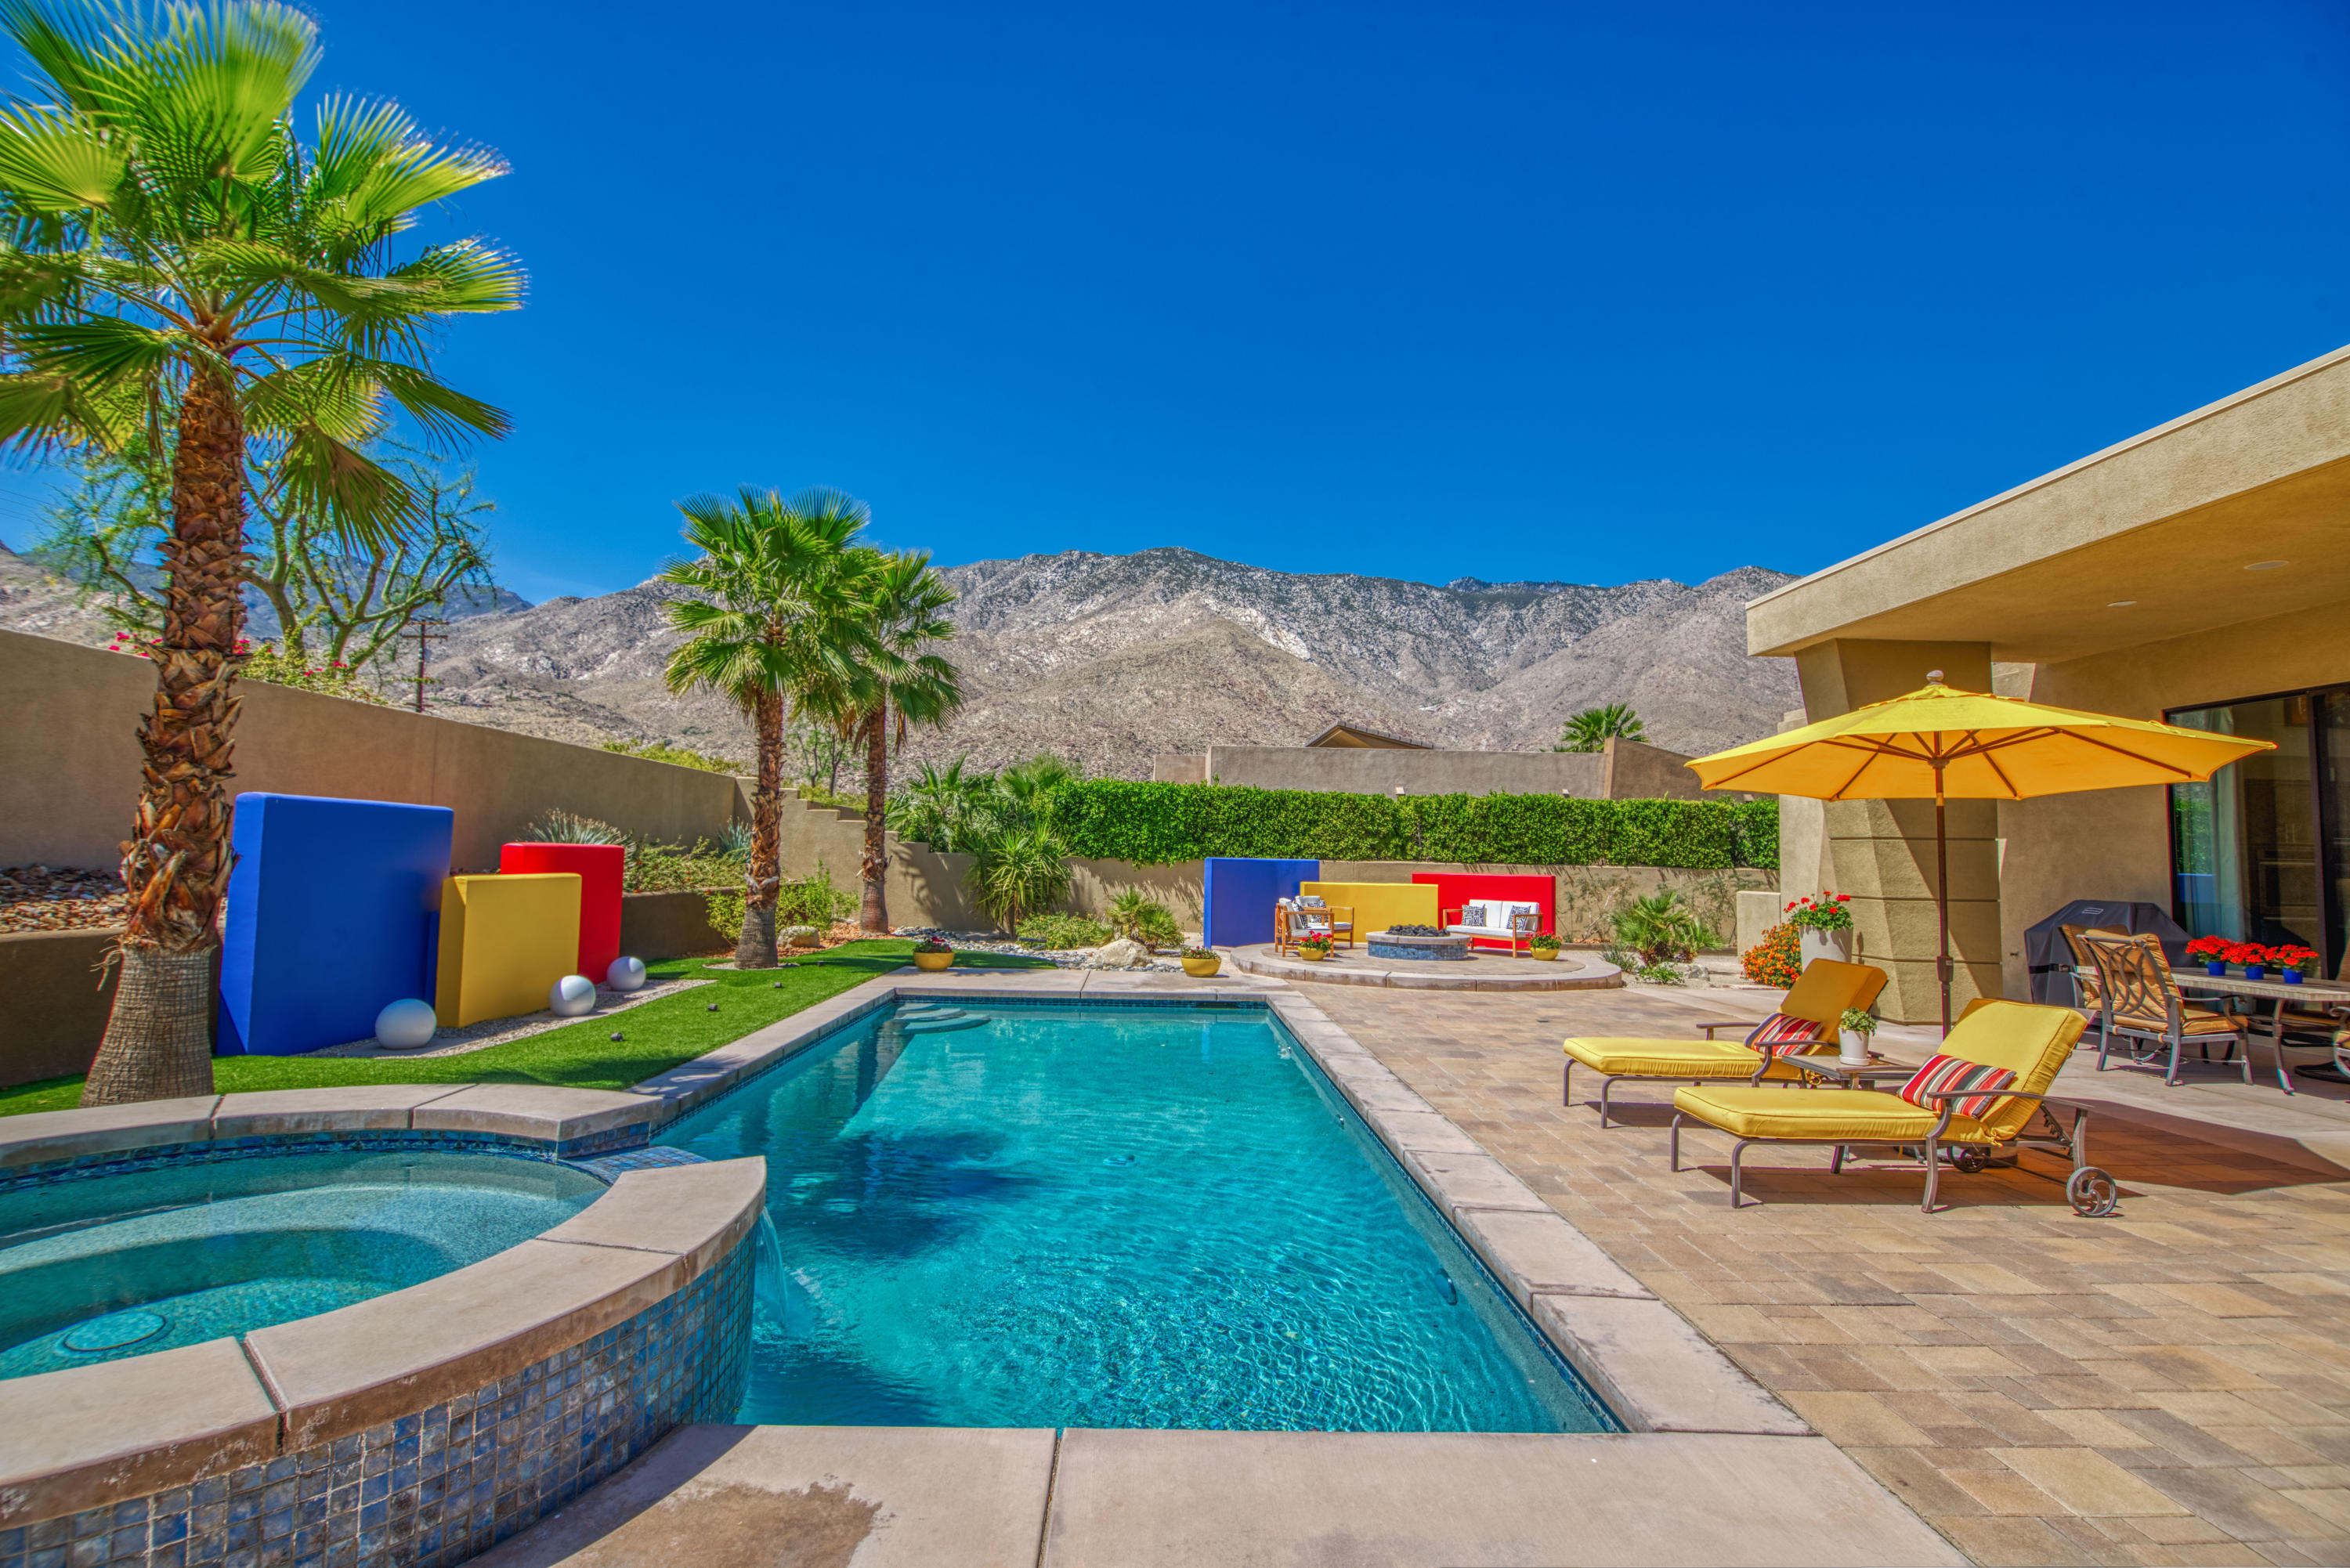 WOW!  High ceilings, open floor plan, designer upgrades and a south-facing backyard that features a resort-style pool and spa, outdoor architectural highlights inspired by Luis Barragan, custom lighting, professionally-installed artificial turf, gas firepit, and panoramic mountain views!  Welcome to luxury at Alta in South Palm Springs!  Private front courtyard with views leads to the expansive great room that has 14 foot high ceilings, clerestory windows, and three sliding glass doors that open to the south-facing backyard.  Spacious kitchen was upgraded with an extended island and includes a suite of built-in stainless steel appliances, a walk-in pantry, attached one car garage as well as an adjacent laundry room with sink that leads to the attached two car garage.  The large dining area with bar serves as an alternative work station and the living room styled up with an included 75'wall-mounted TV and 5 built-in surround sound speakers sets the scene for entertaining.  Adjacent family room also offers mountain views and a sliding glass door that opens to the backyard.  Master Suite offers high ceilings, incredible views, an included 65' wall-mounted TV, a walk-in closet and a private bath with dual vanities, a walk-in shower, and a separate tub.  Junior Ensuite Two also offers mountain views, a walk-in closet and a private bath with dual sinks and a walk-in shower.  Junior Ensuite Three has a walk-in closet and a private with a shower/tub.  Pre-paid solar lease, too!